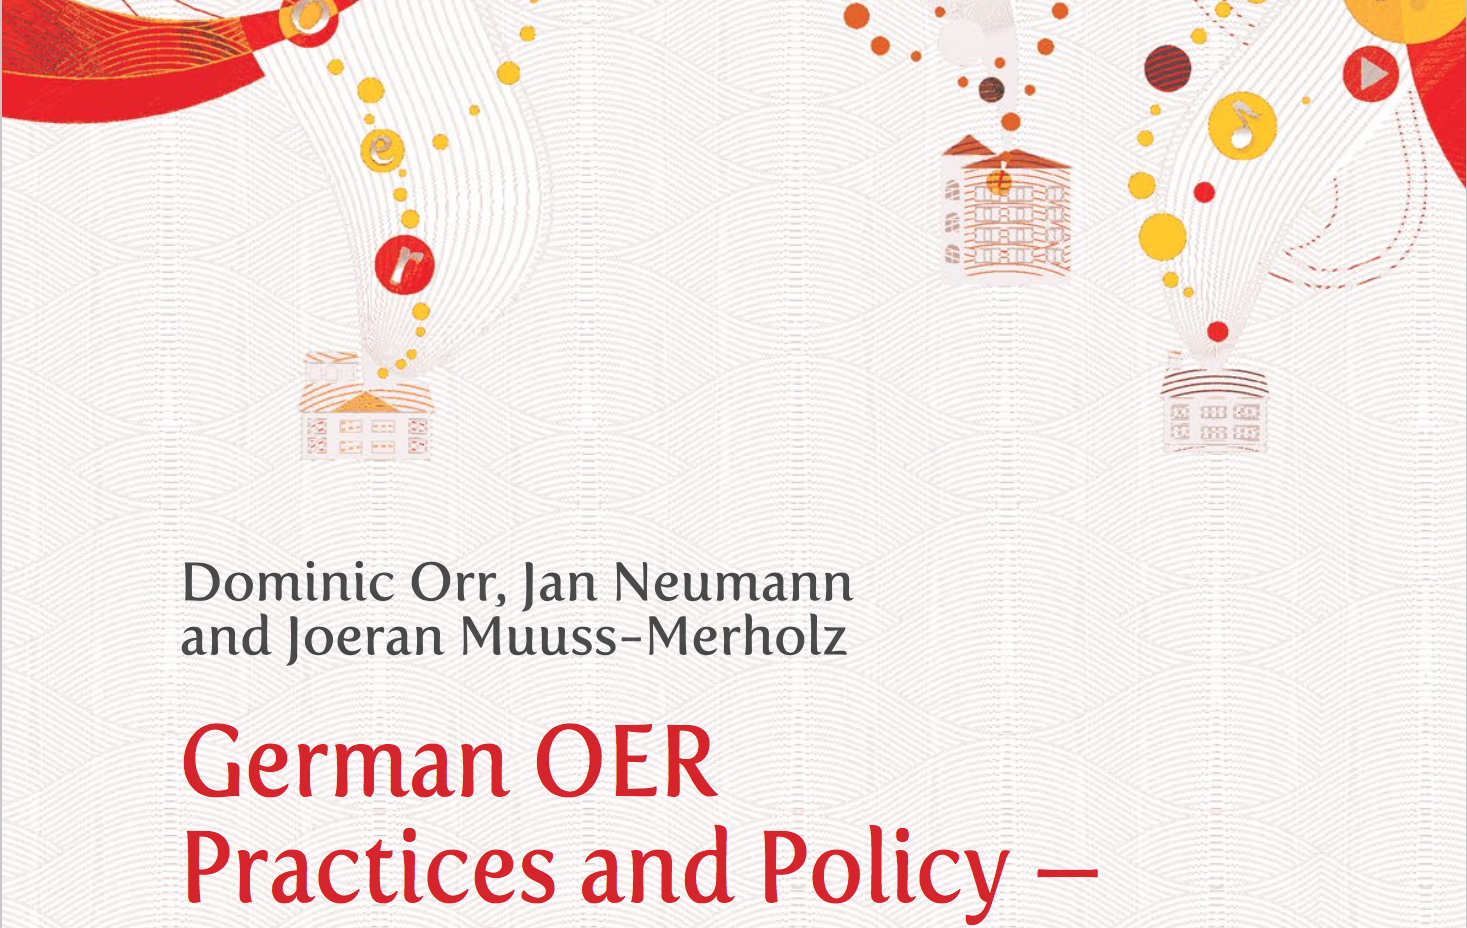 Titelblatt (Ausschnitt) German OER Practices and Policy von Dominic Orr, Jan Neumann und Jöran Muuß-Merholz. Hrsg. von Institute for Information Technology in Education der UNESCO CC BY SA 3.0